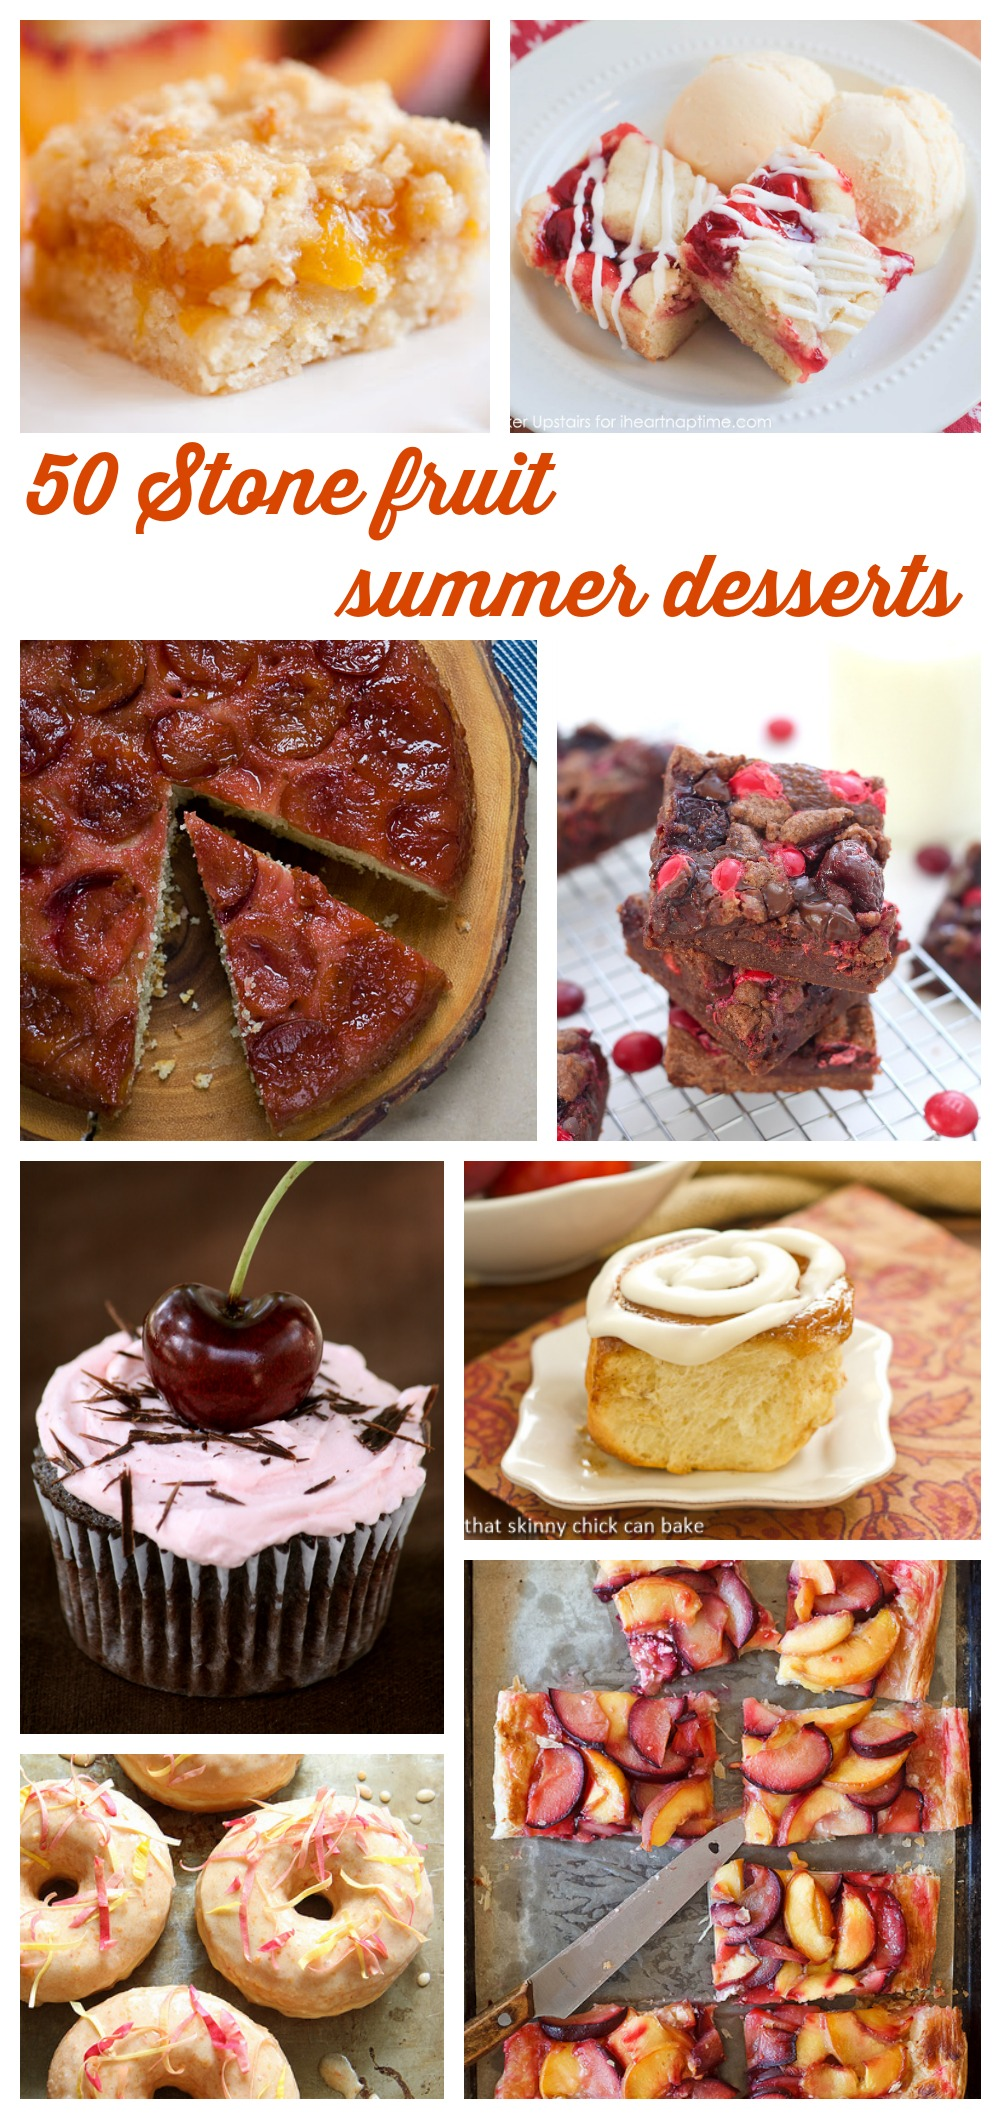 Have to below are 50 irresistible summer desserts using fresh fruit